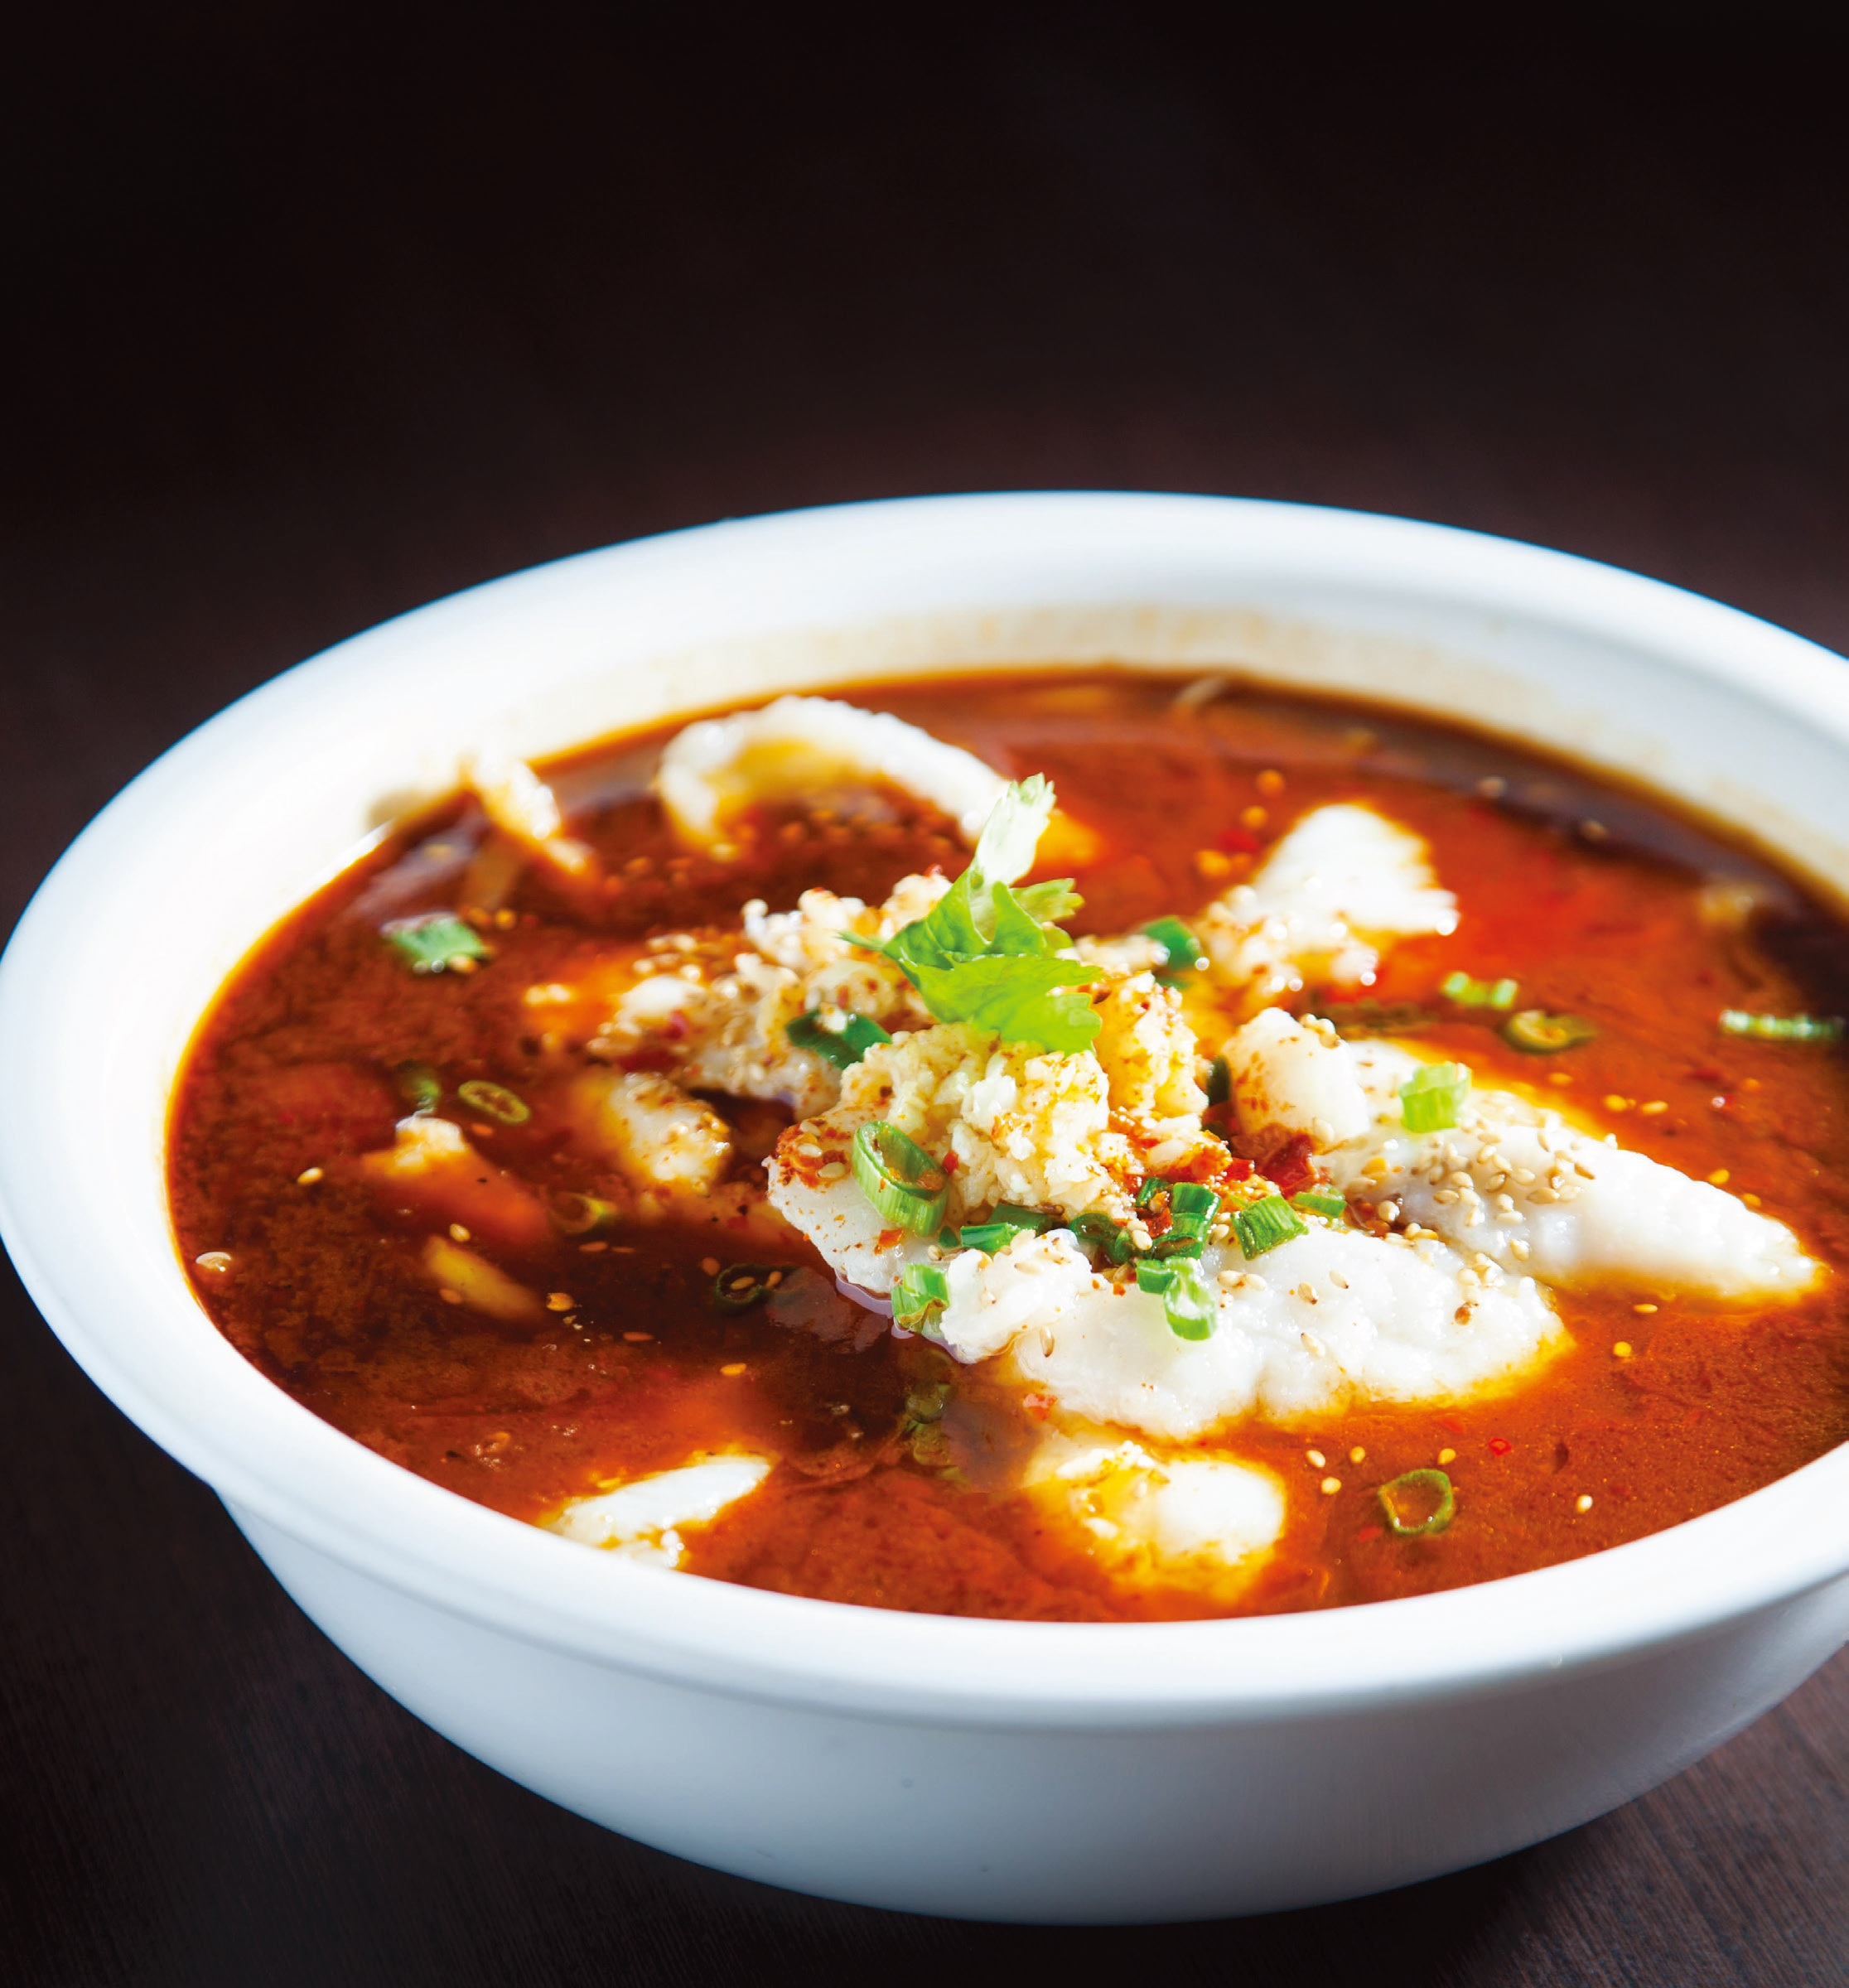 Hot & spicy basa fillet soup